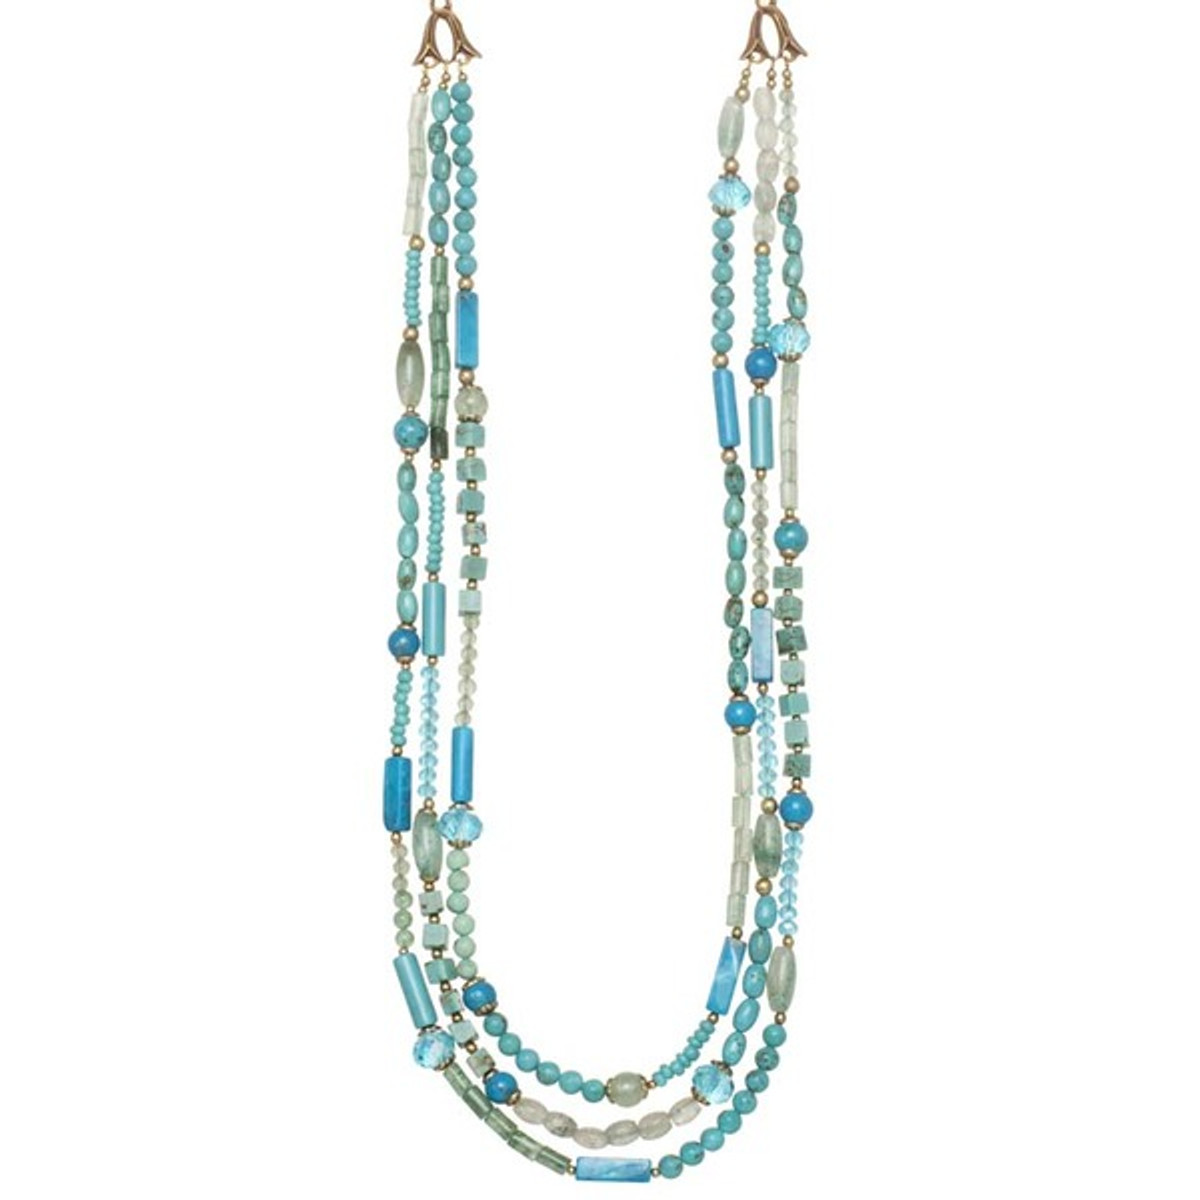 Turquoise Michal Golan Jewelry Nile Necklace